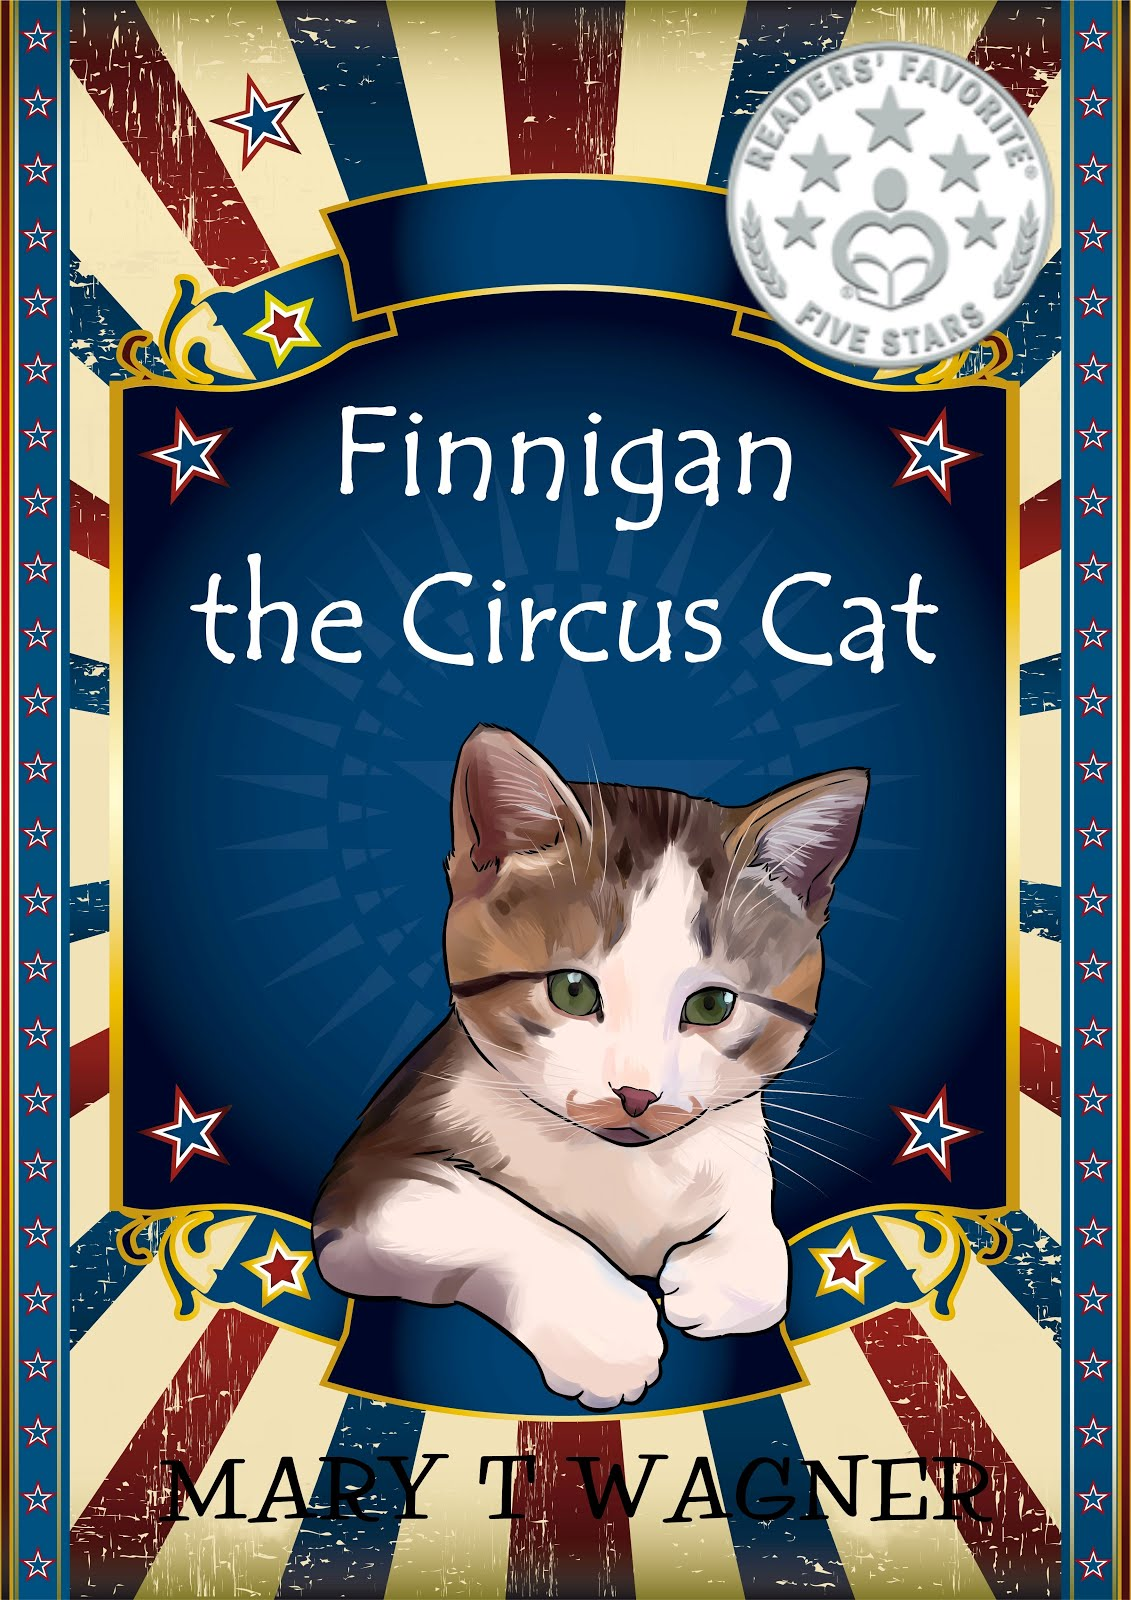 The Finnigan series begins!